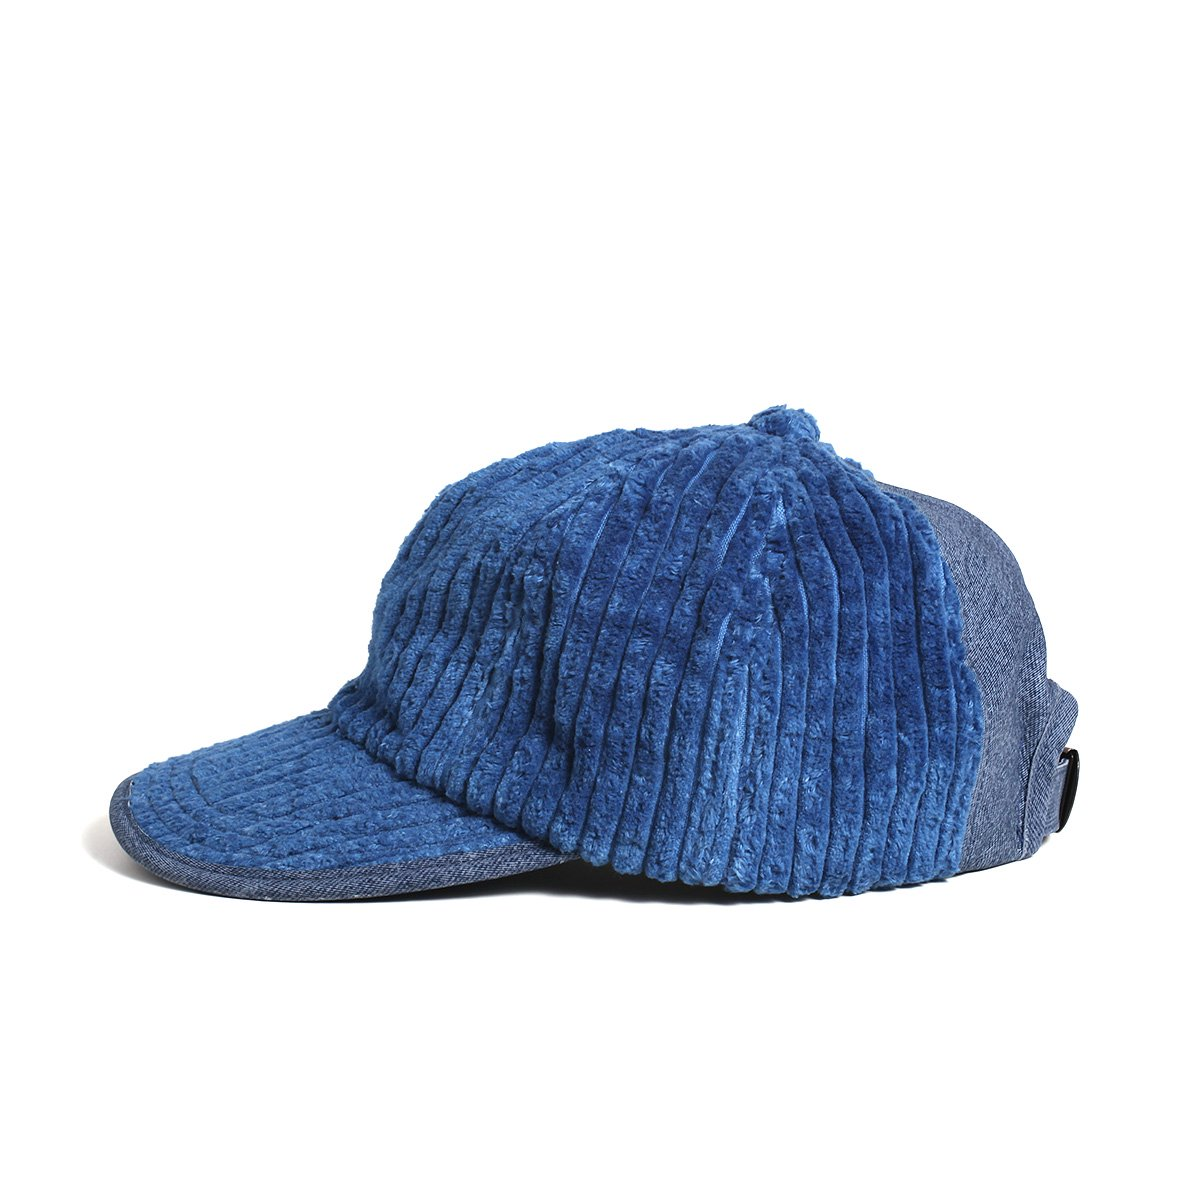 LEATHER COMBI CORDUROY 8PANEL CAP 詳細画像1